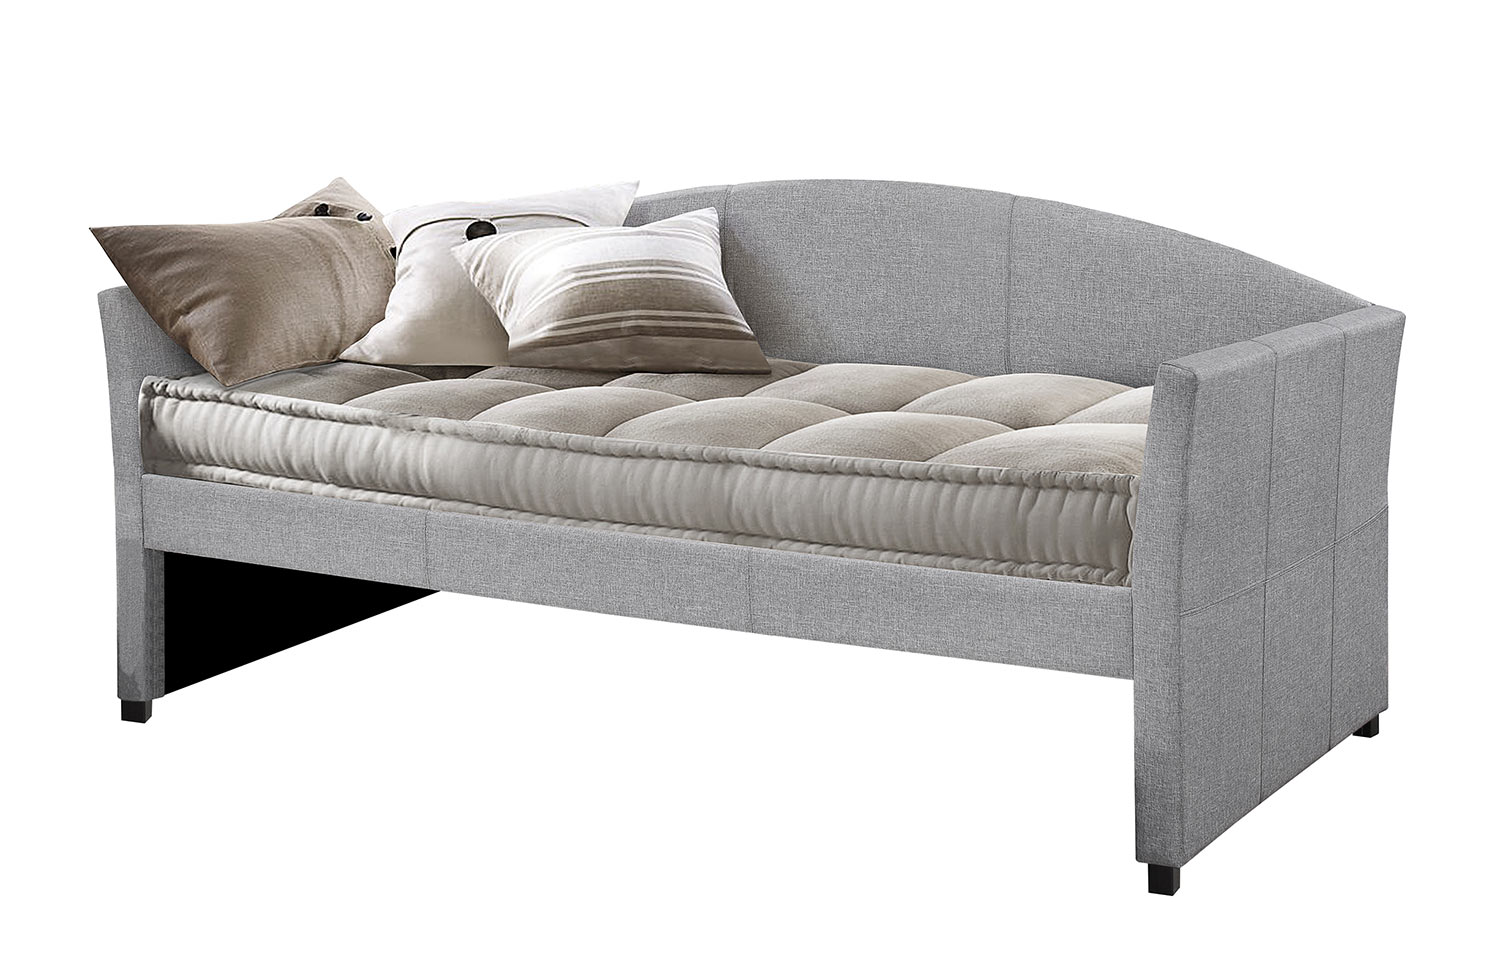 Hillsdale Westchester Daybed - Smoke Gray